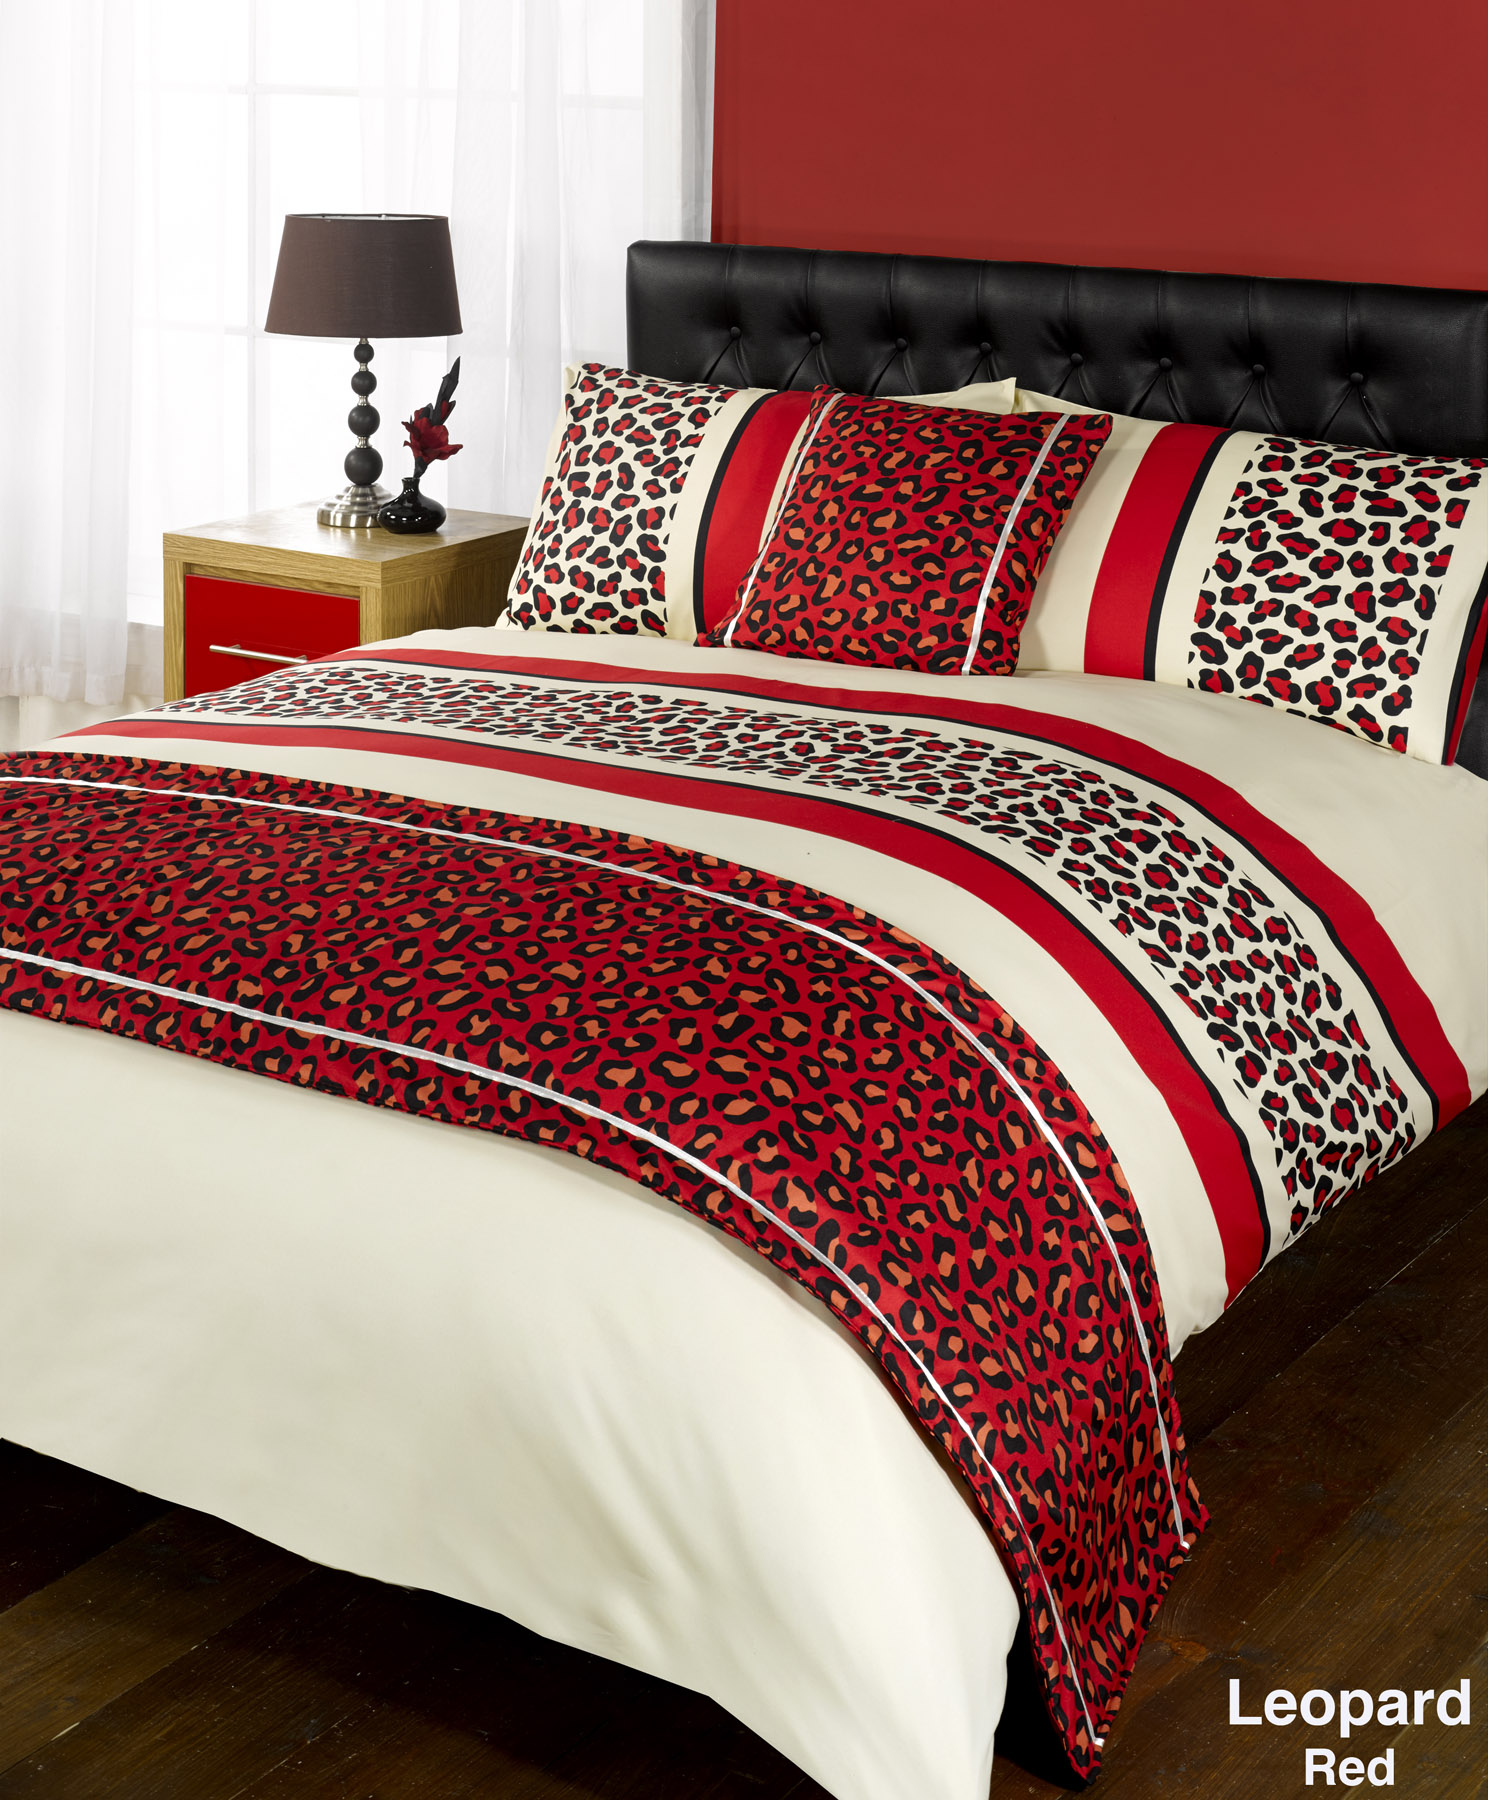 King Bed Duvet Cover Duvet Cover With Pillow Case Quilt Bedding Set Bed In A